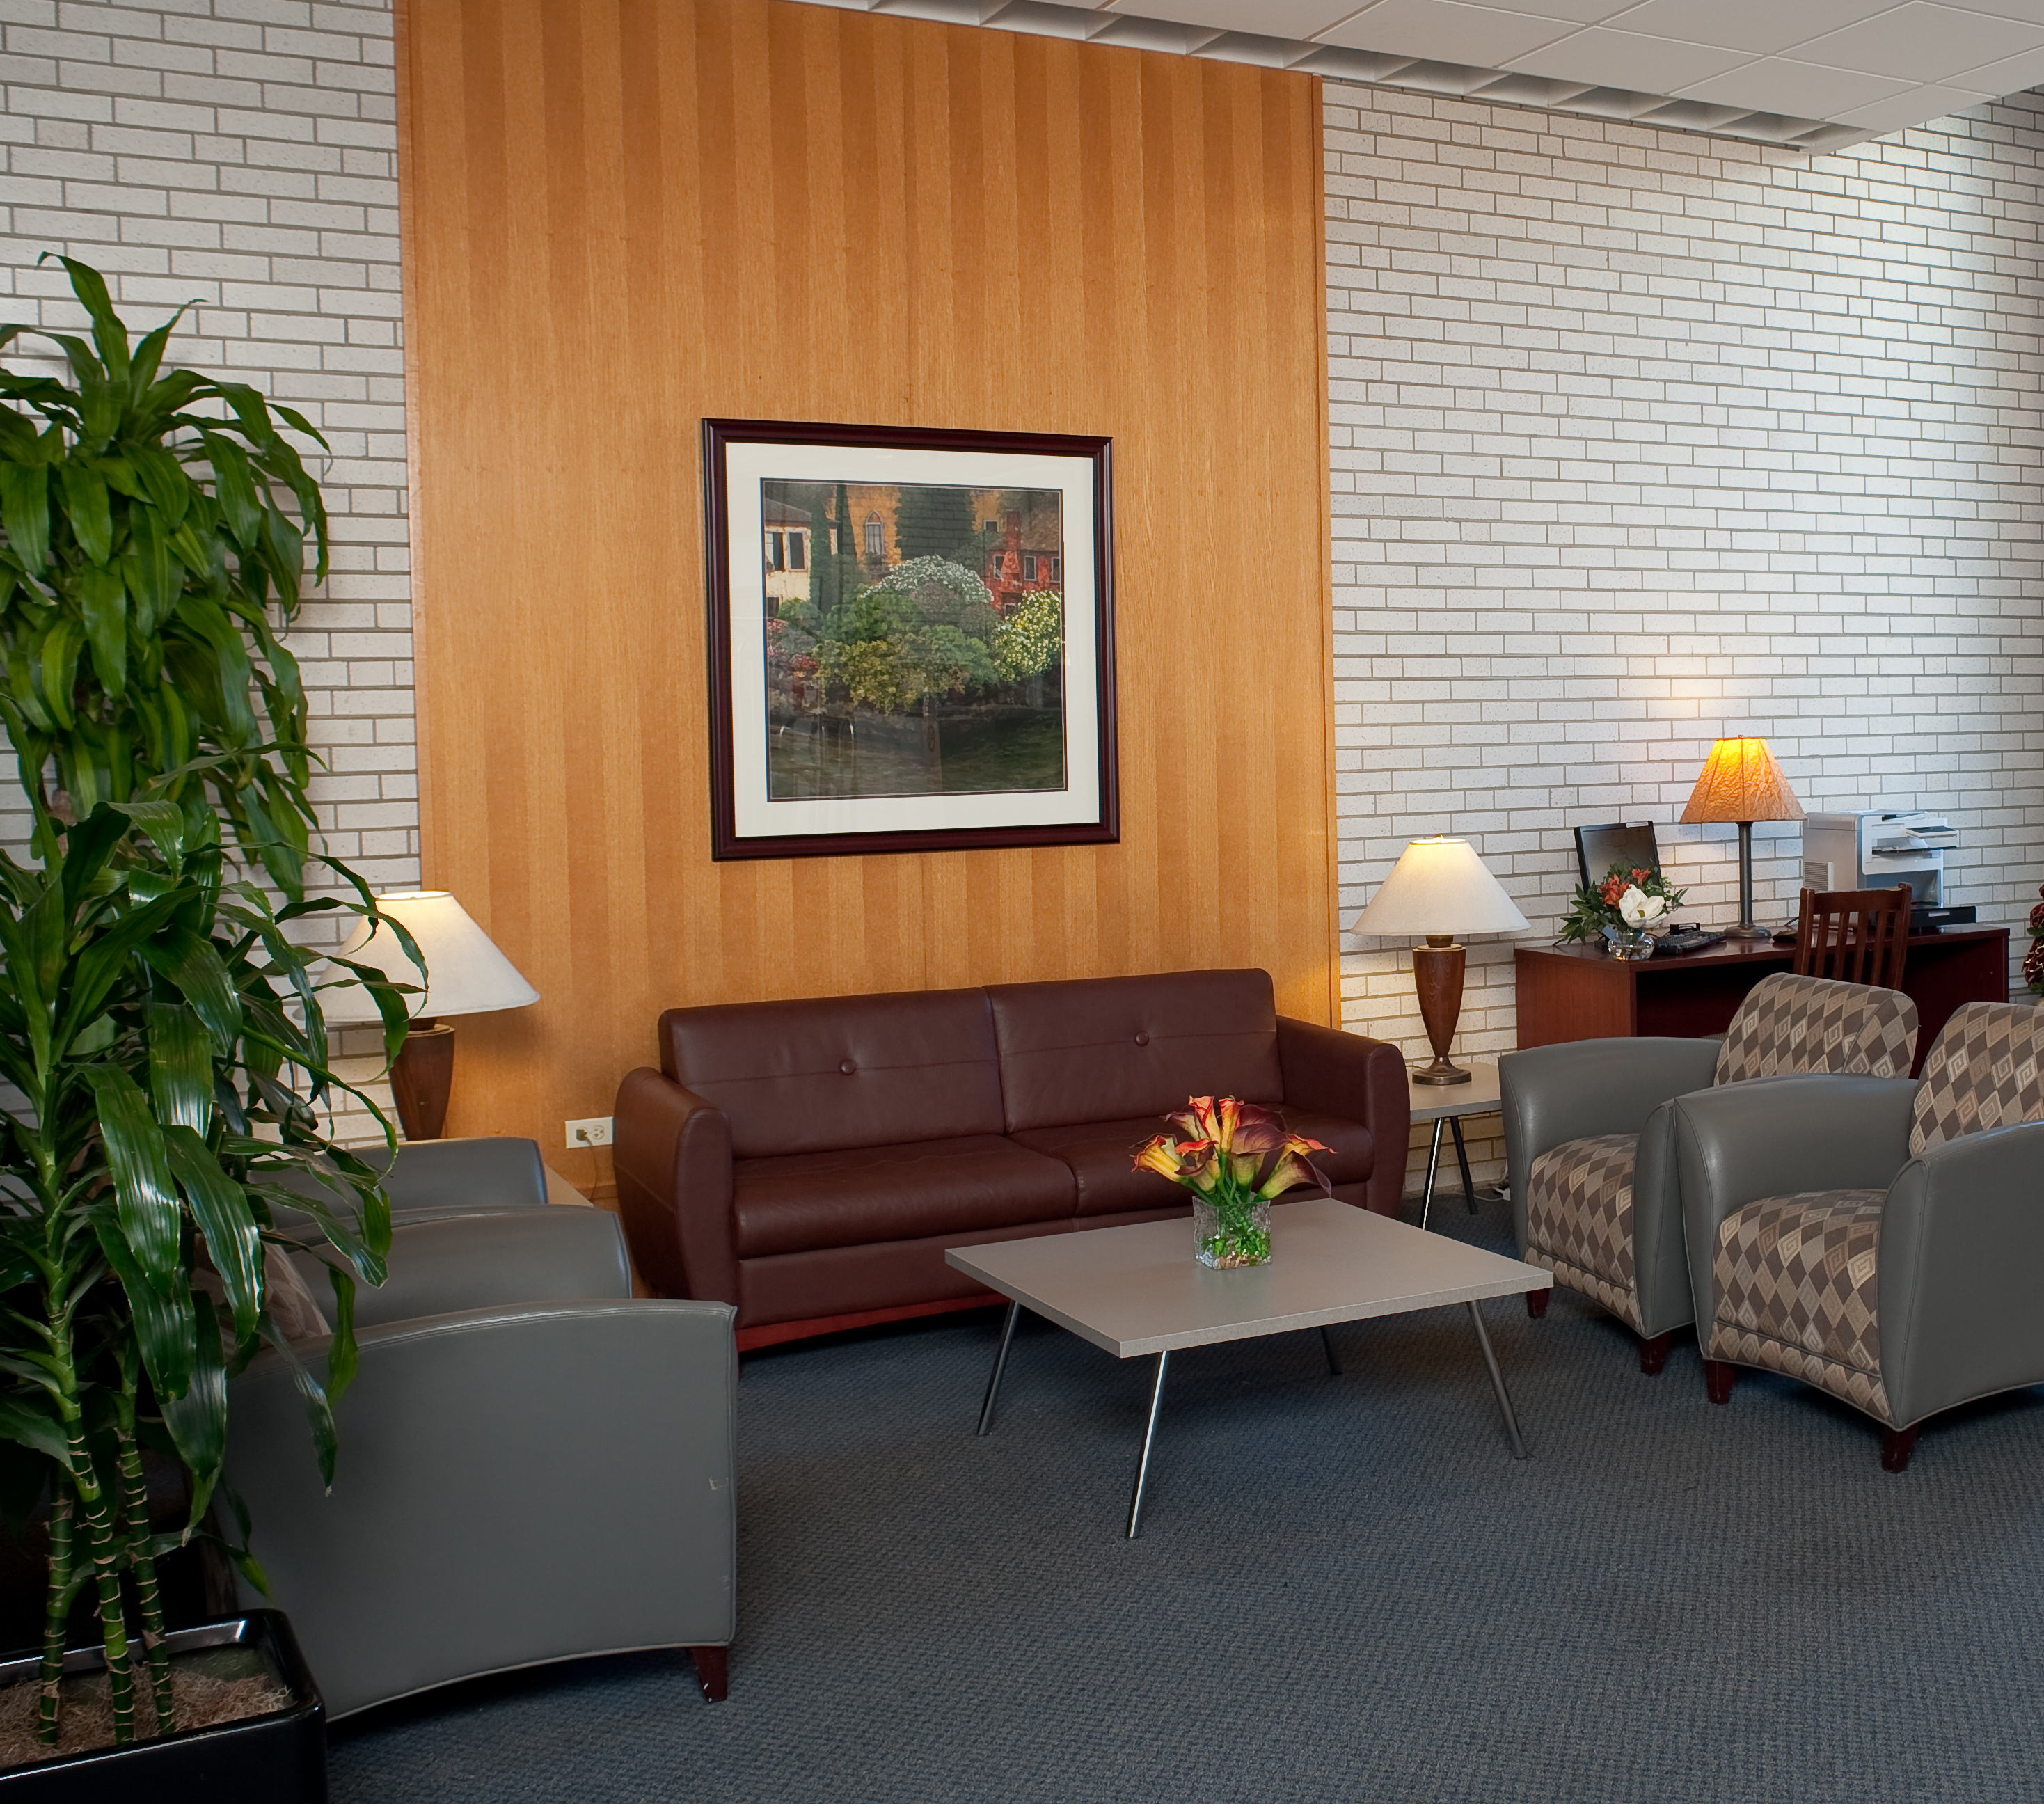 The lobby at the Midtown Hotel.